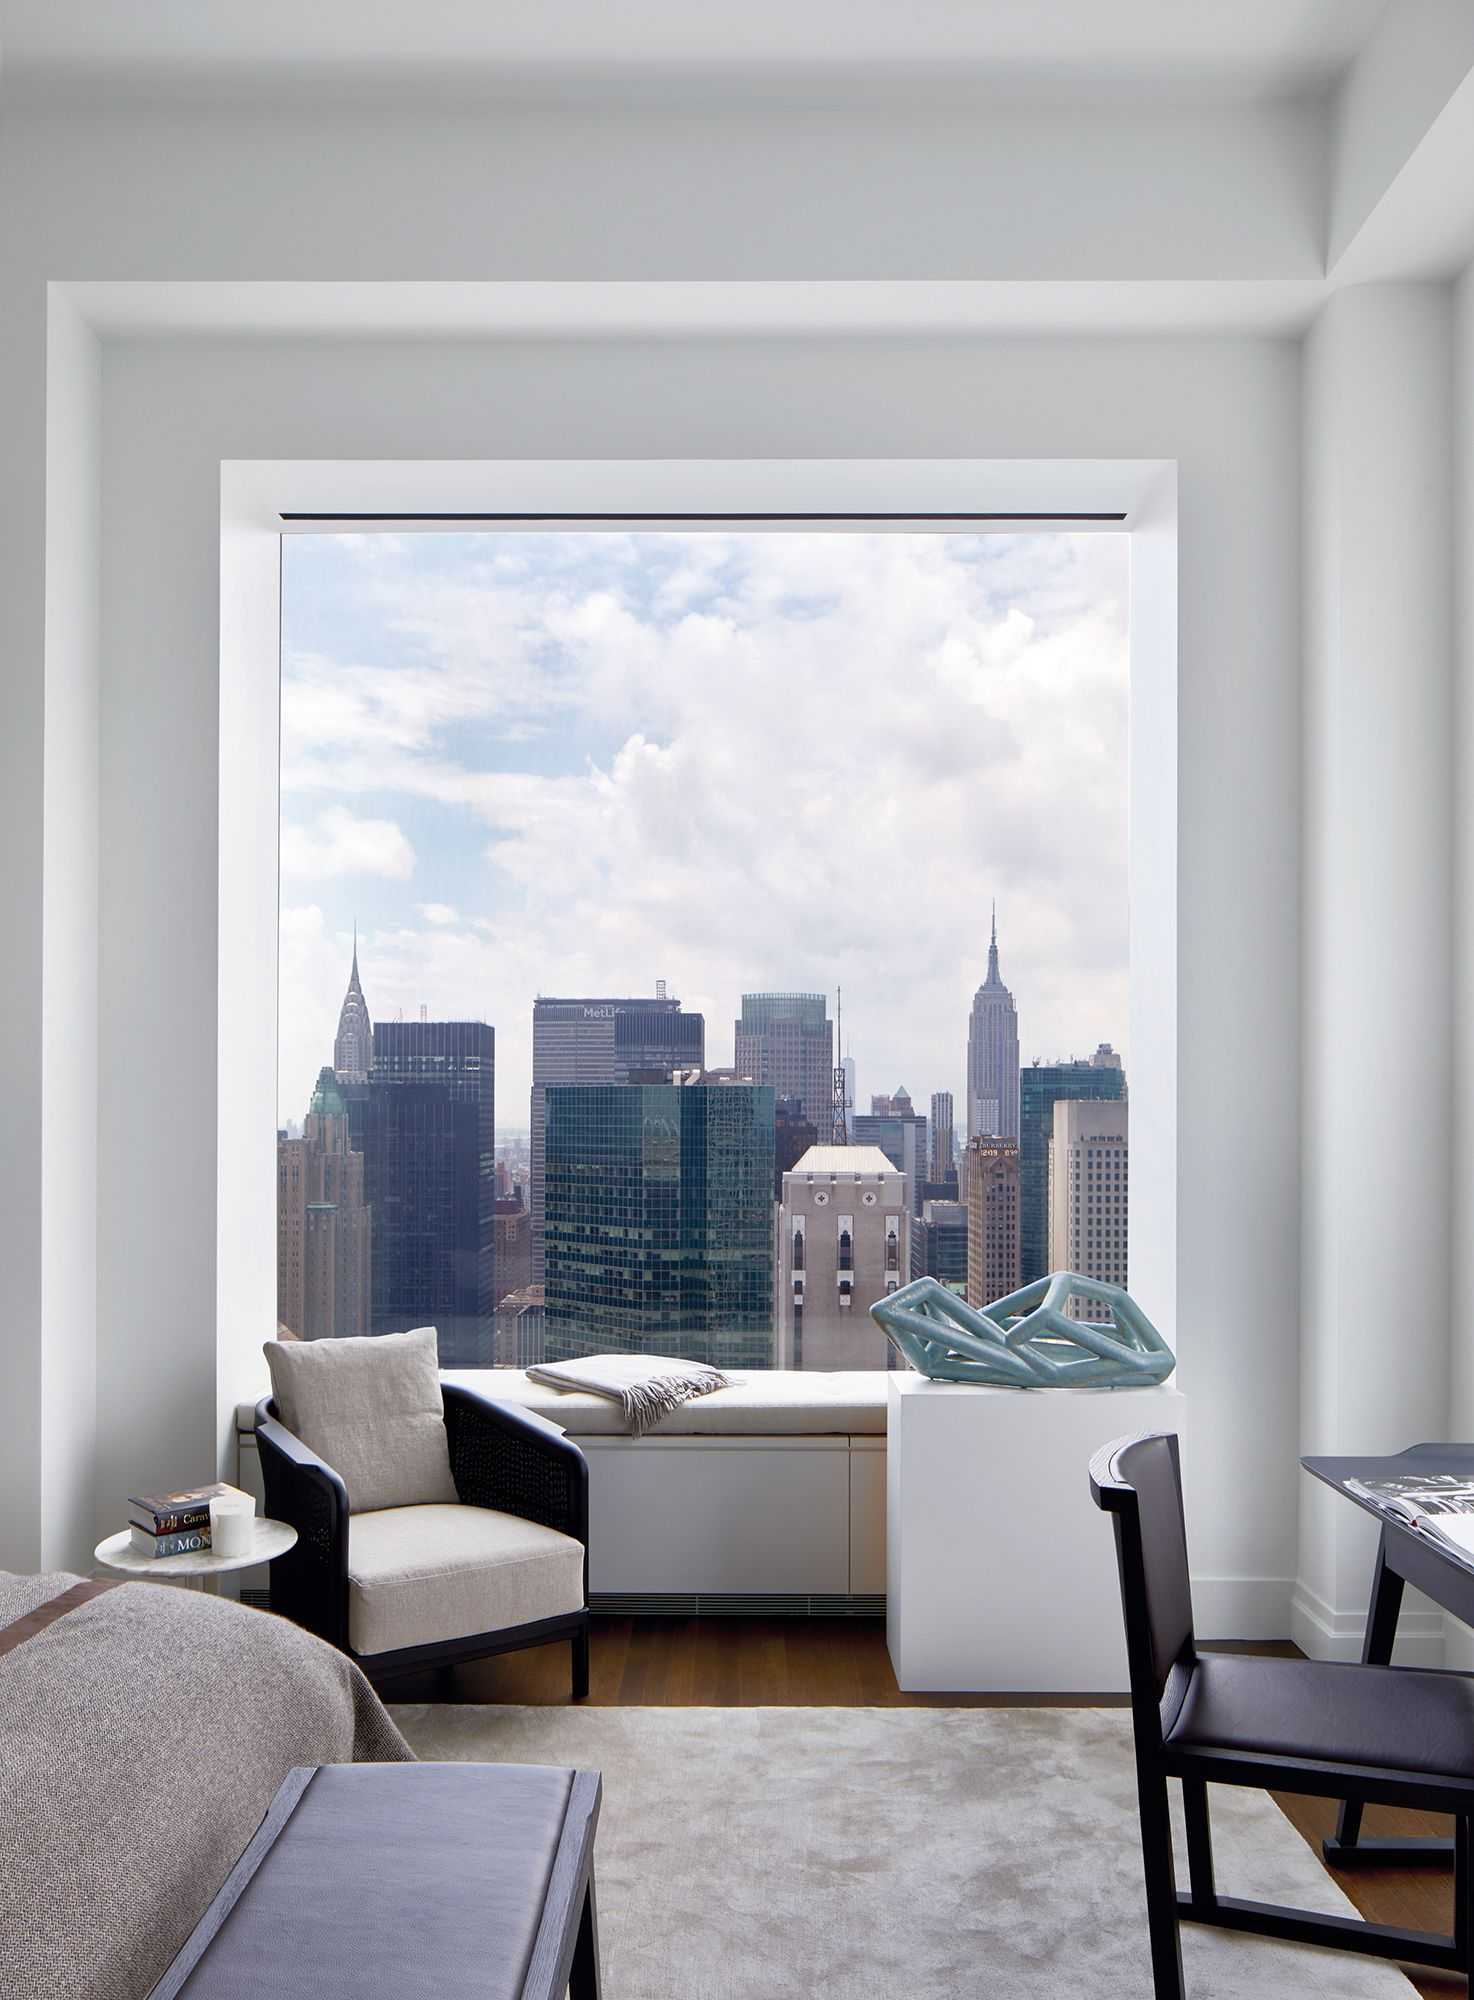 Home Tour: This Penthouse In New York Exudes A Museum's Formal Elegance